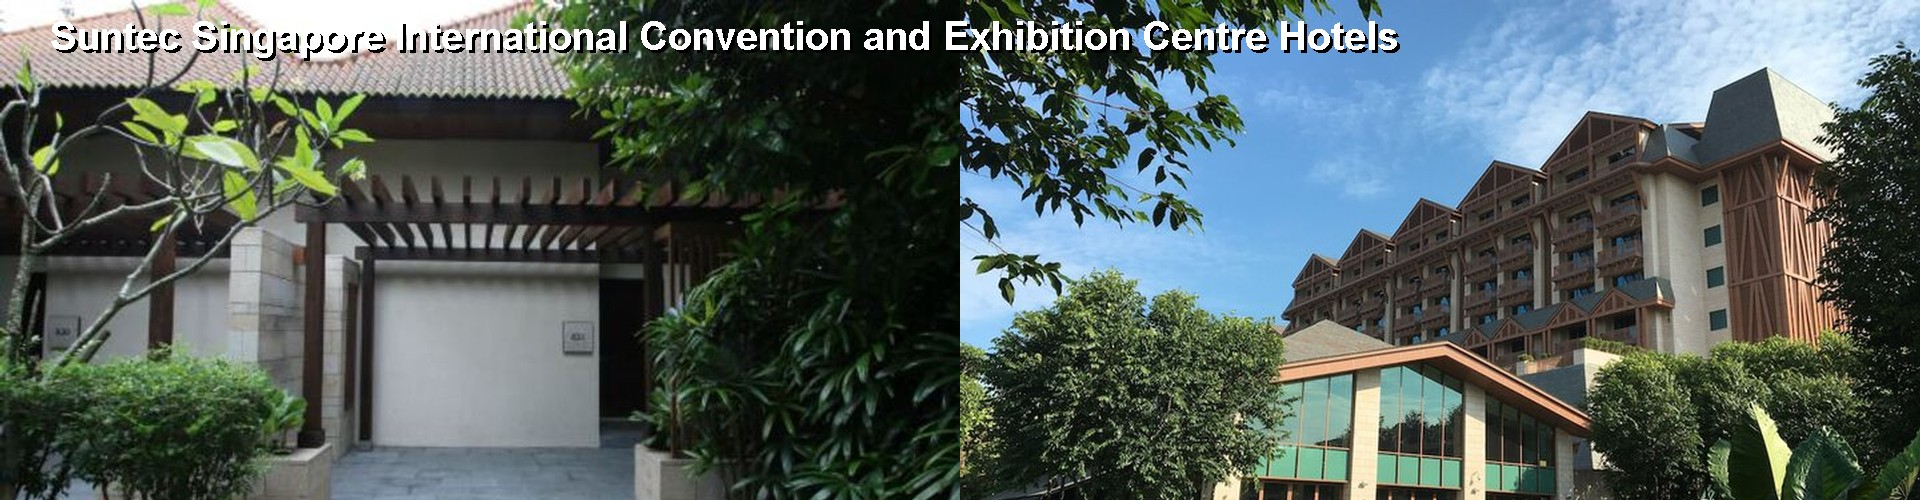 5 Best Hotels Near Suntec Singapore International Convention And Exhibition Centre